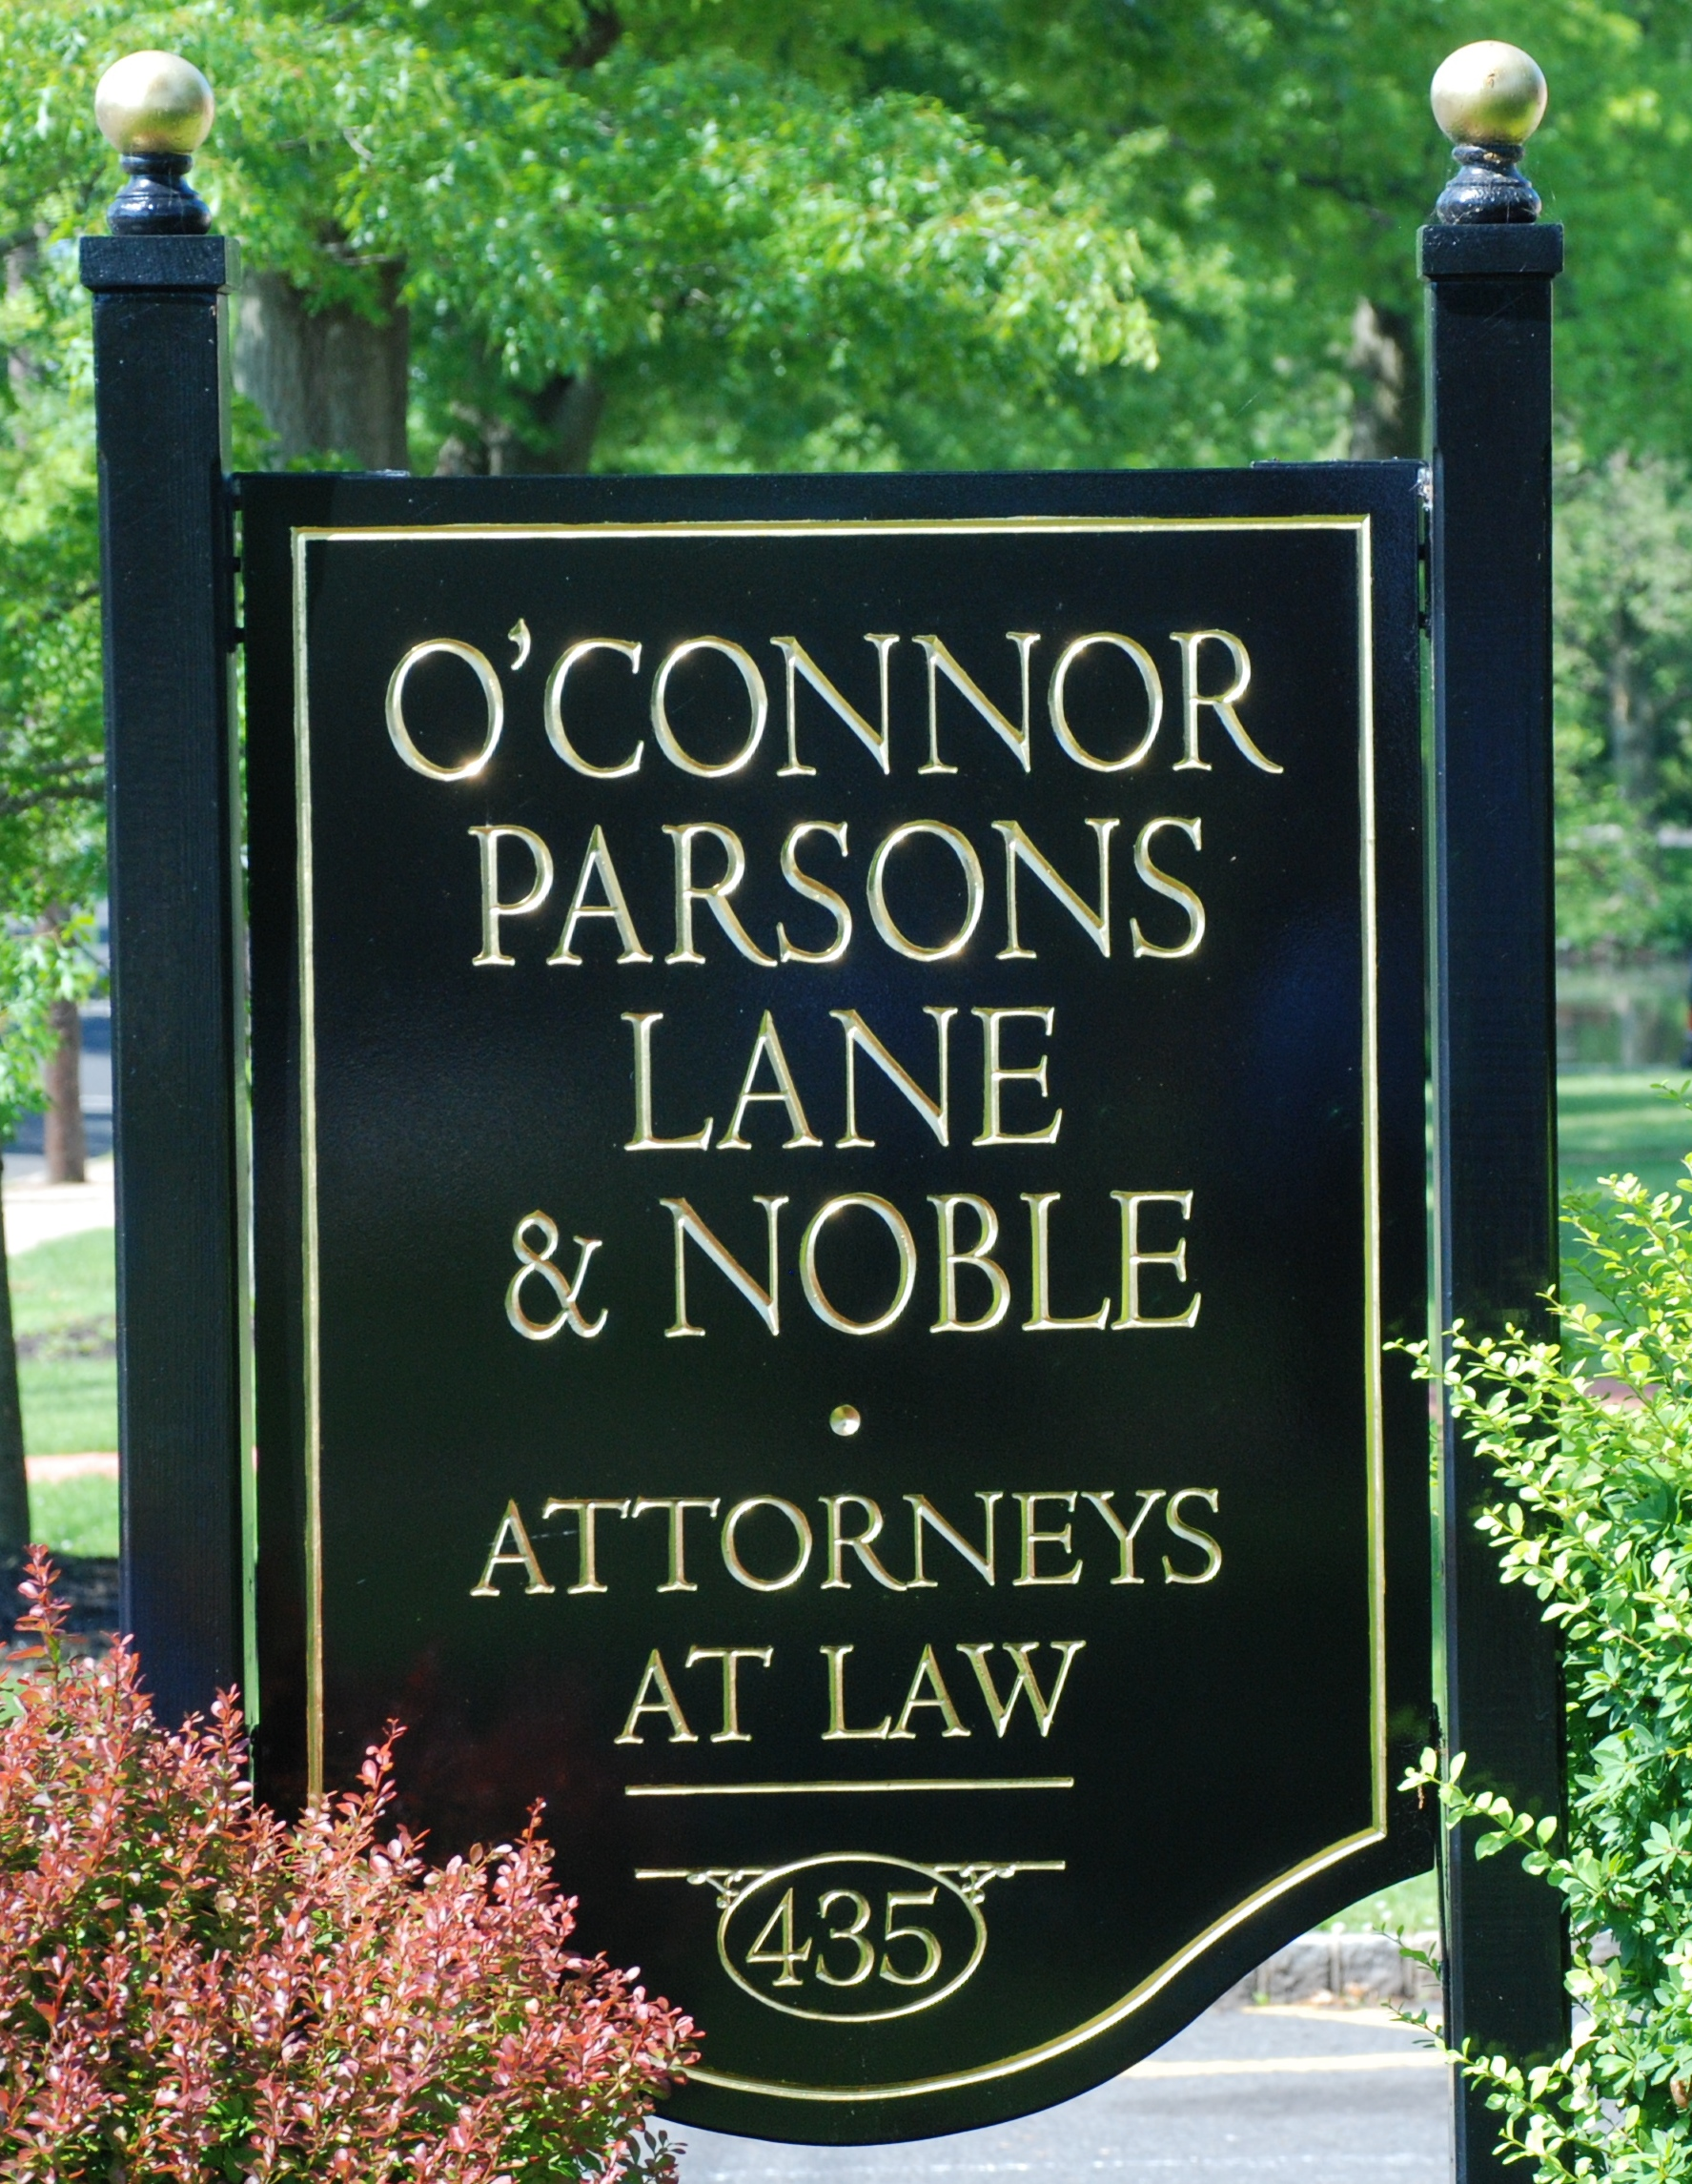 O'Connor, Parsons, Lane & Noble LLC - ad image